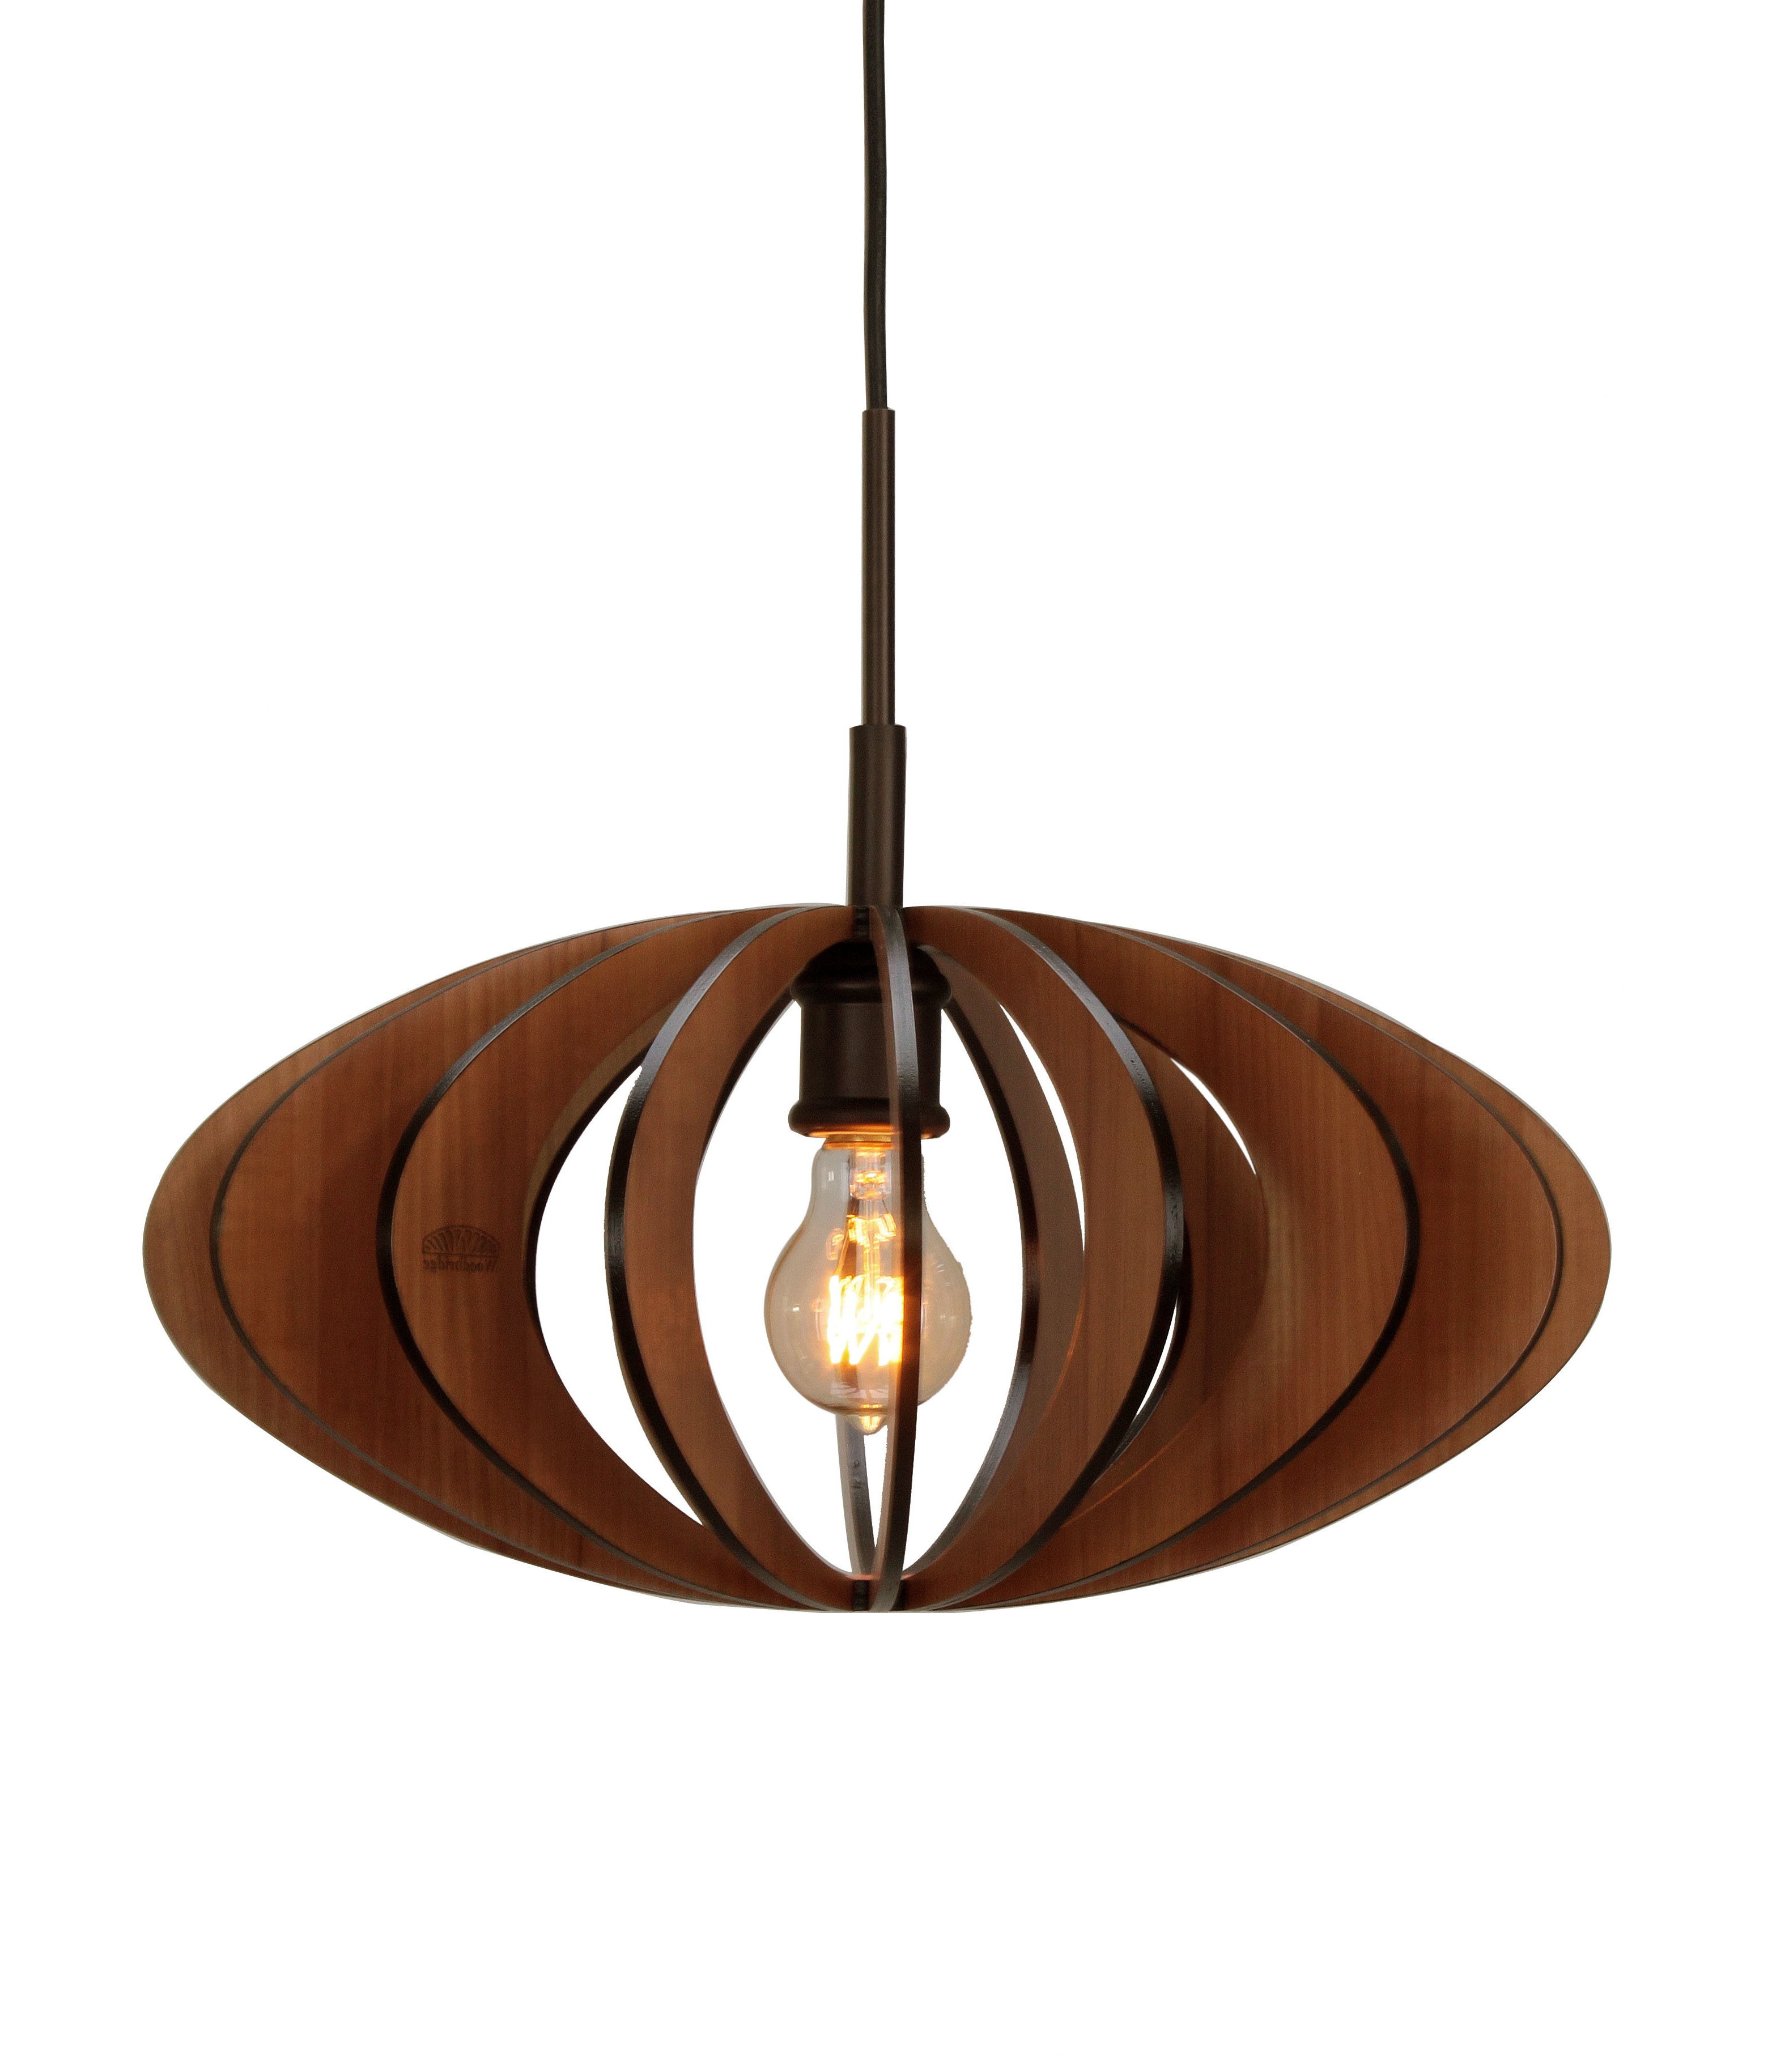 Hydetown 1 Light Single Geometric Pendants Throughout 2019 Trent Austin Design Bair 1 Light Single Geometric Pendant (View 11 of 25)